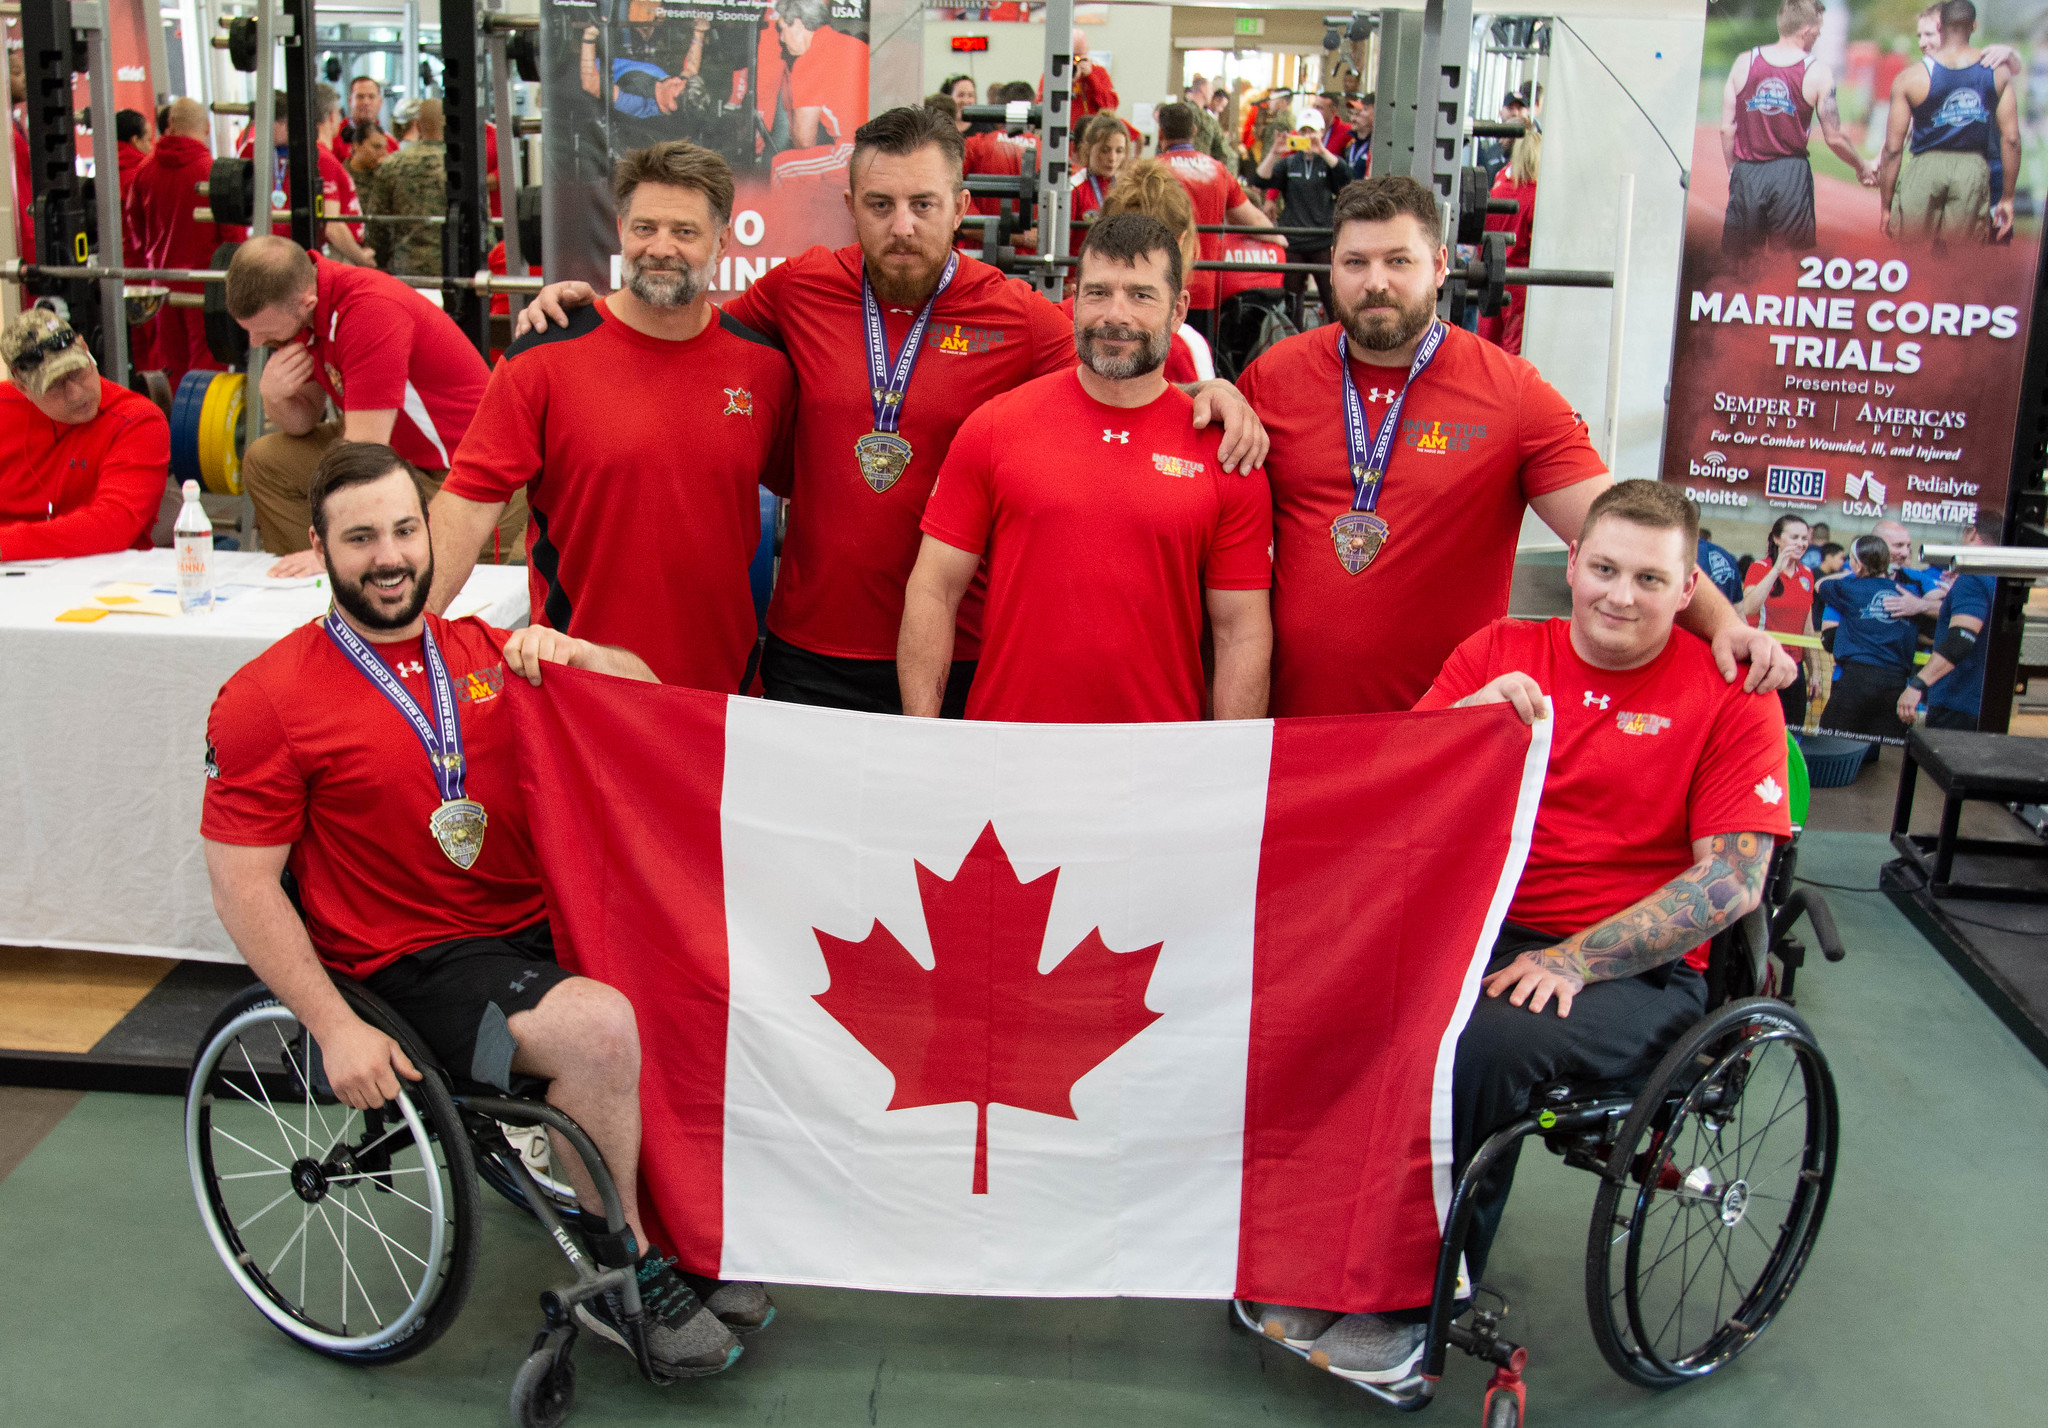 Invictus Games athlete forced to get creative like many others during COVID-19 outbreak Image